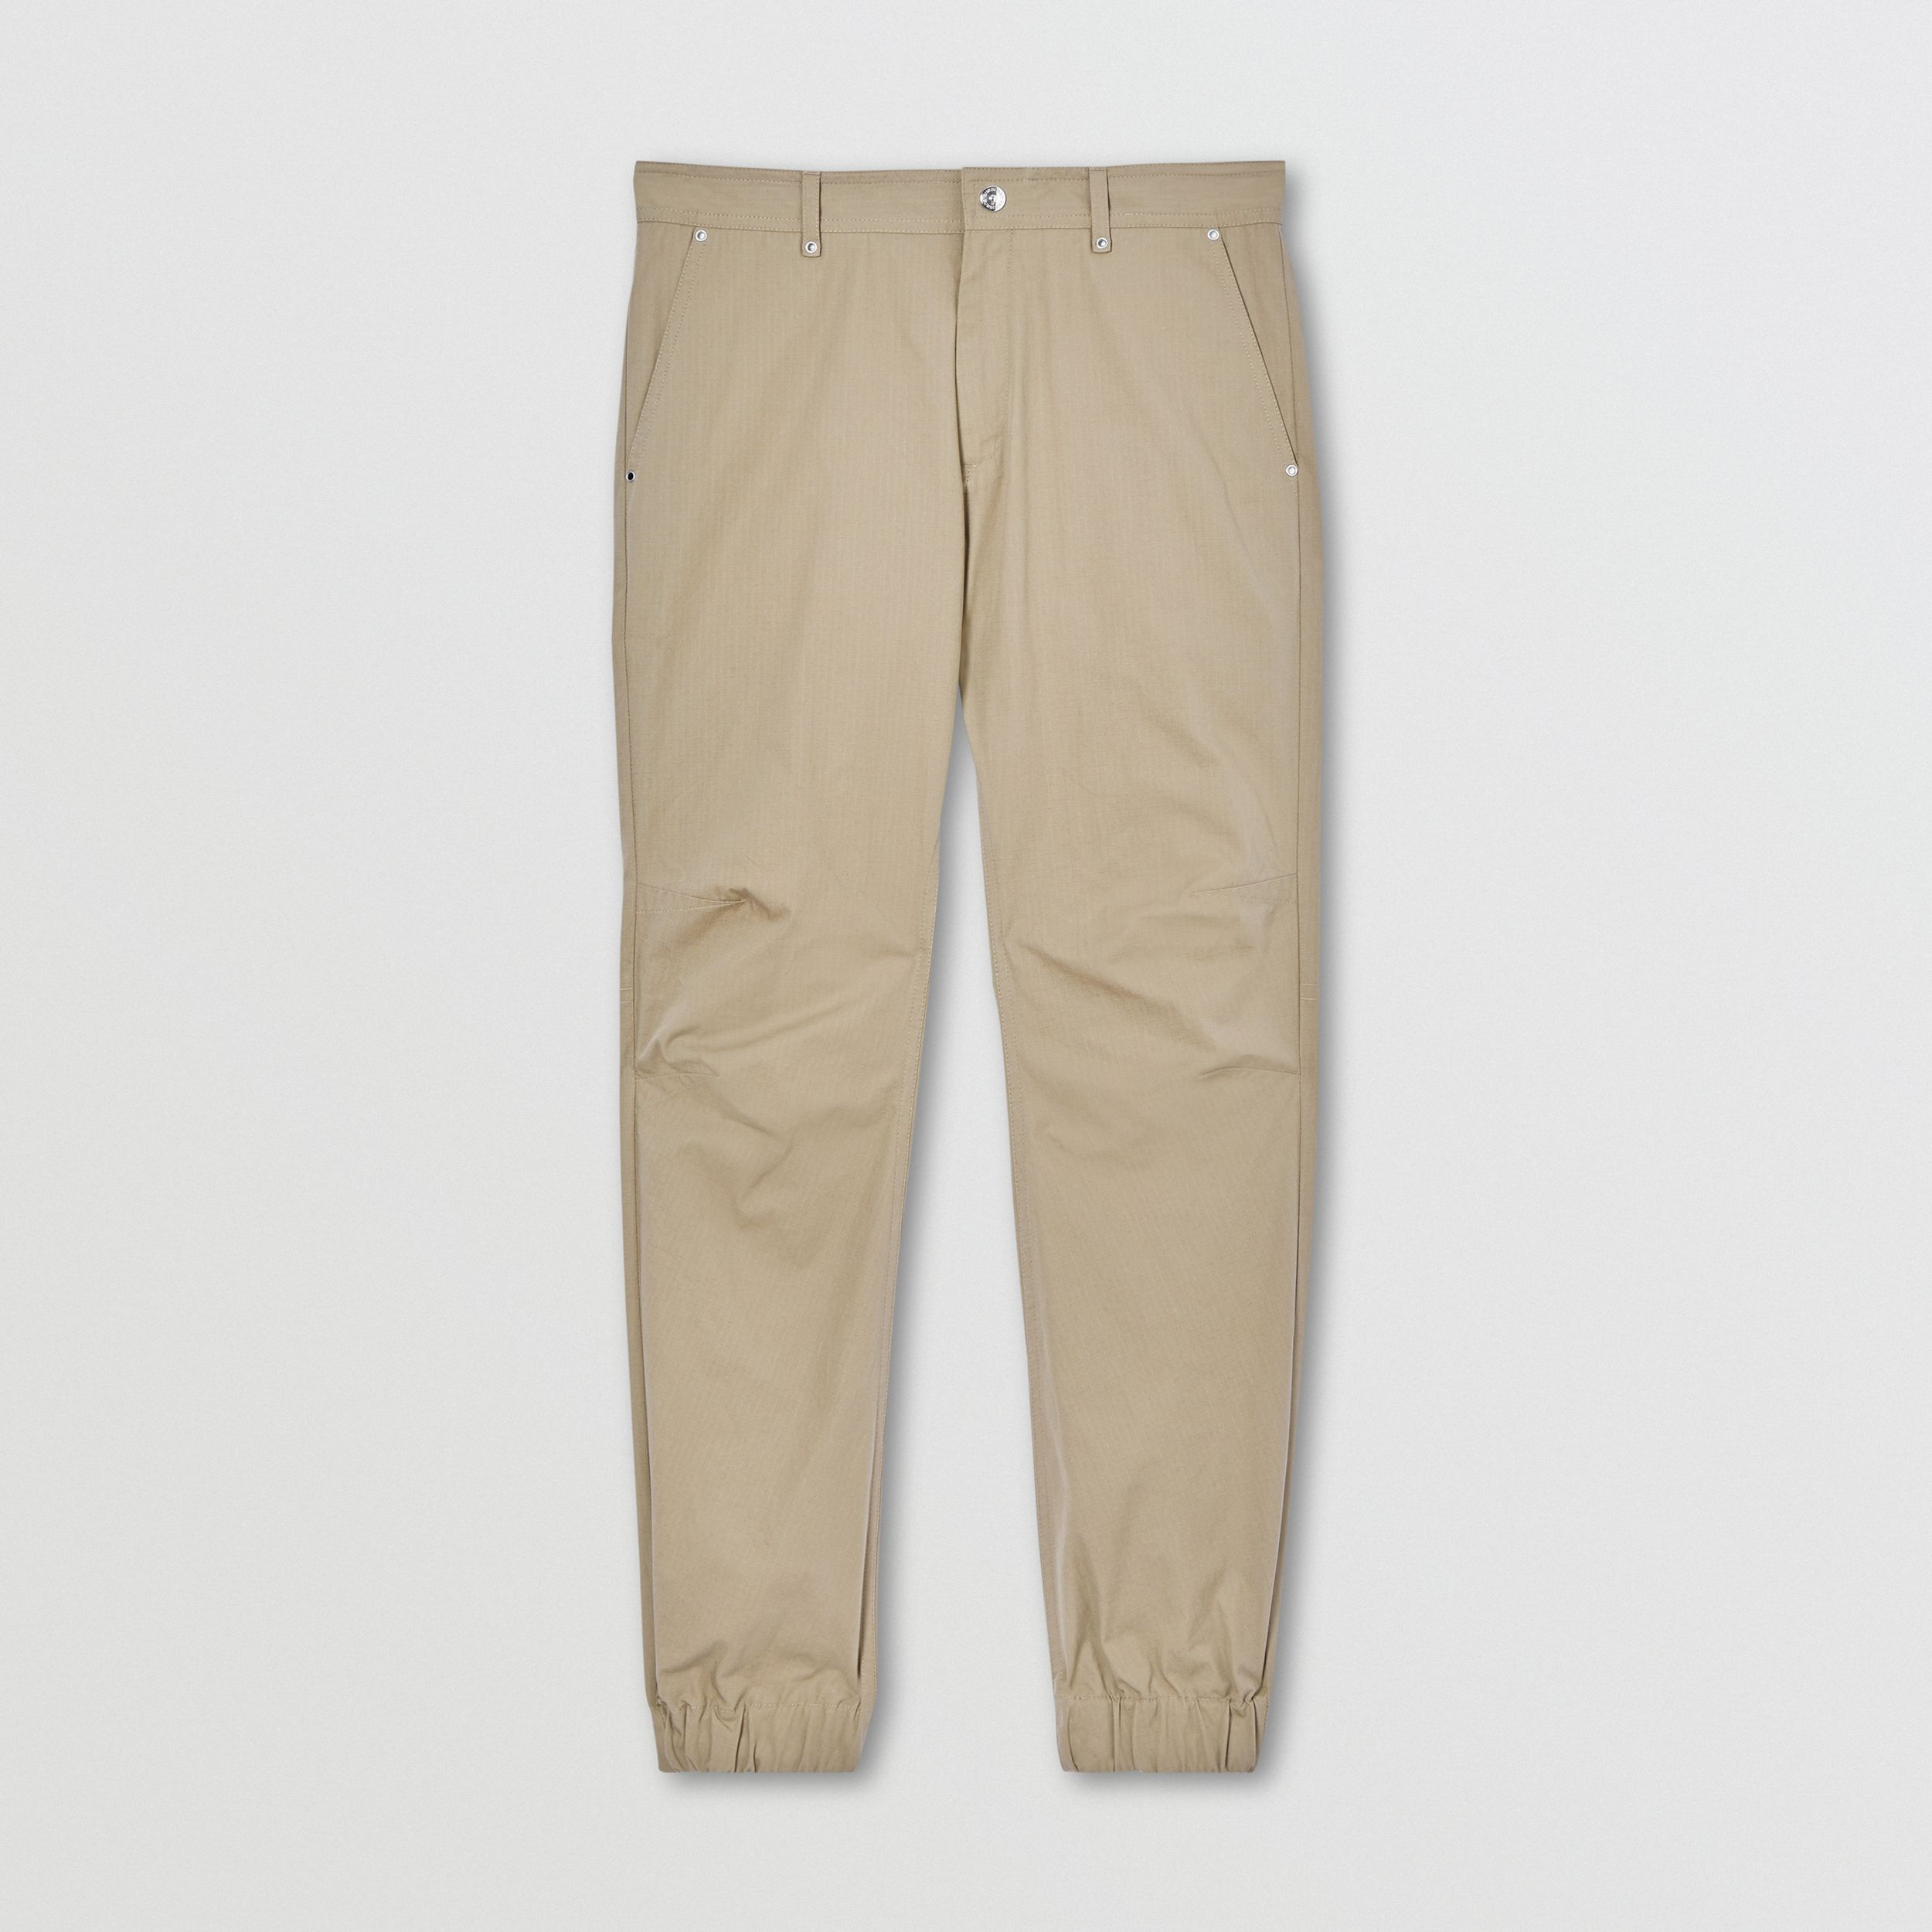 Ripstop Cotton Trousers in Stone - Men | Burberry - 4